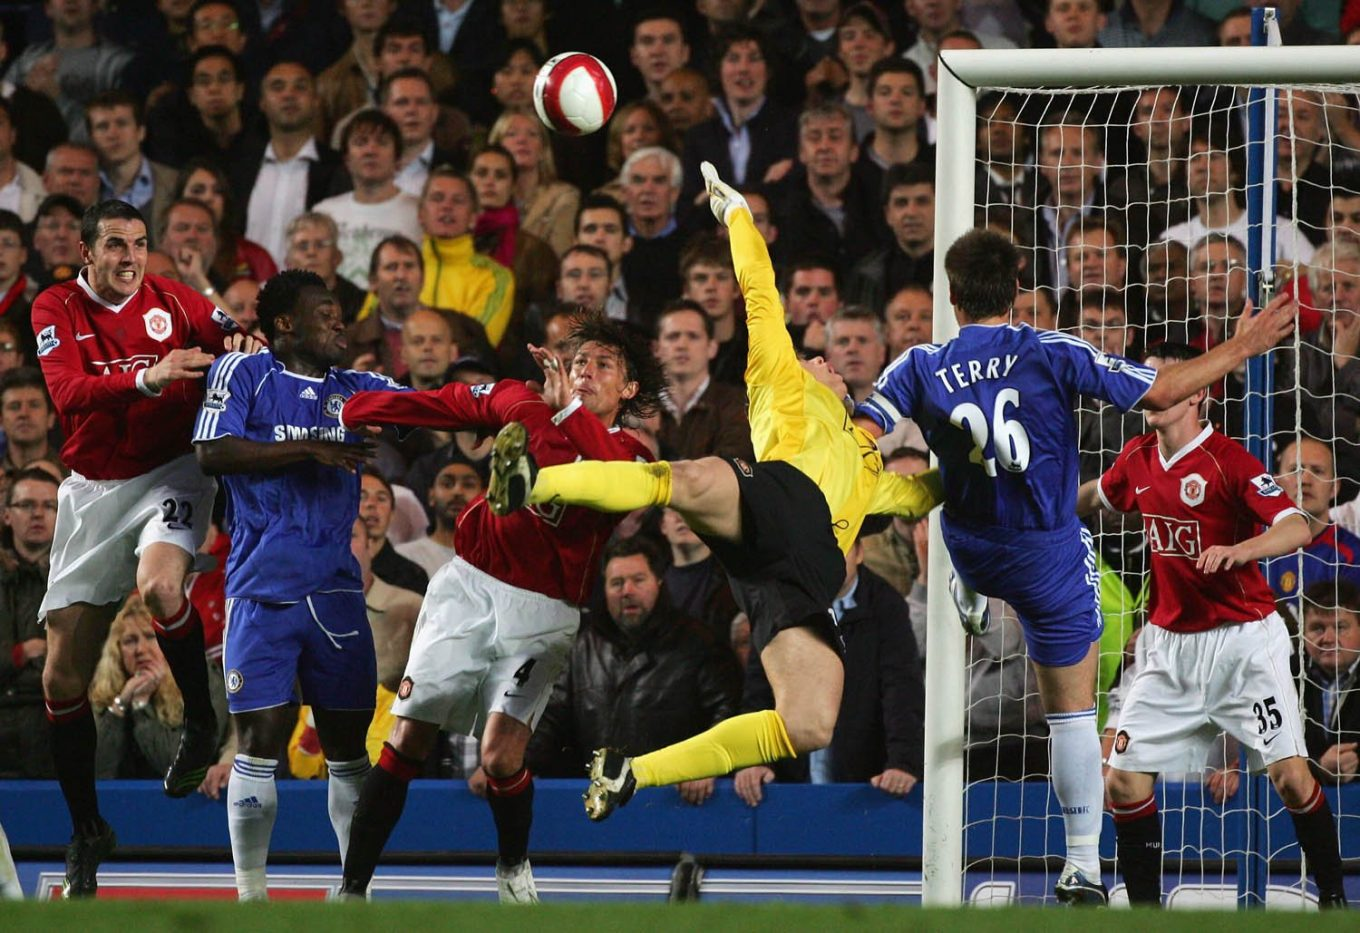 LONDON - MAY 09: Tomasz Kuszczak of Manchester United (3R) stretches for the ball under pressure from John Terry of Chelsea (2R) during the Barclays Premiership match between Chelsea and Manchester United at Stamford Bridge on May 9, 2007 in London, England. (Photo by Mike Hewitt/Getty Images) *** Local Caption *** Tomasz Kuszczak;John Terry